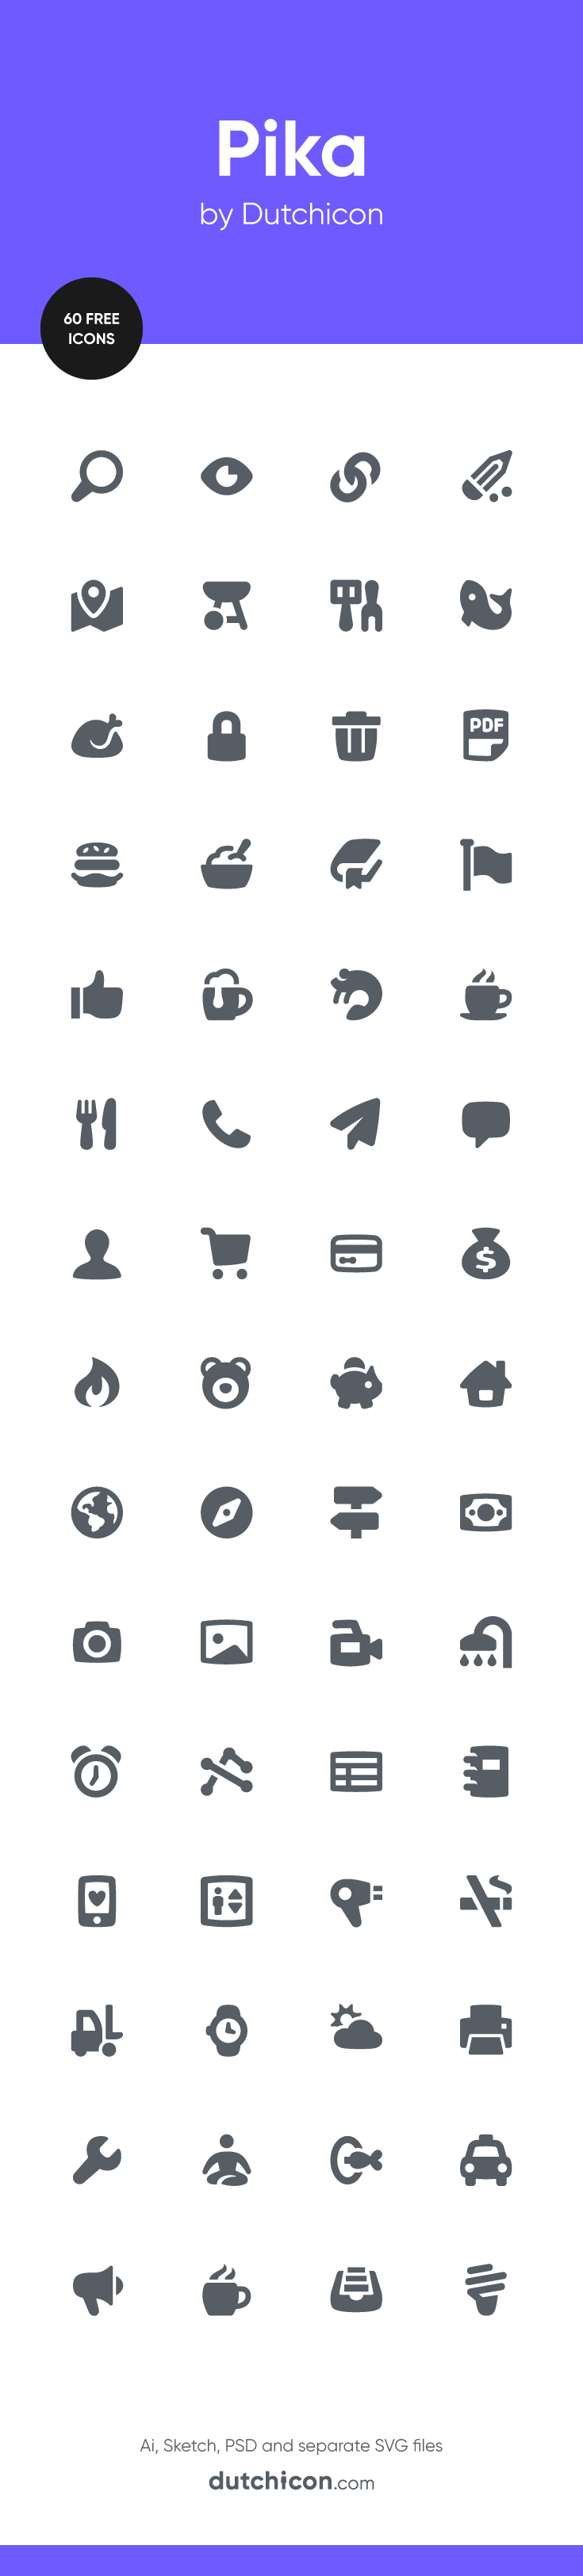 60 FREE icons in Pika style available at Dutchicon.com. Direct download: https://dutchicon-store.myshopify.com/cart/31969687314:1?channel=buy_button